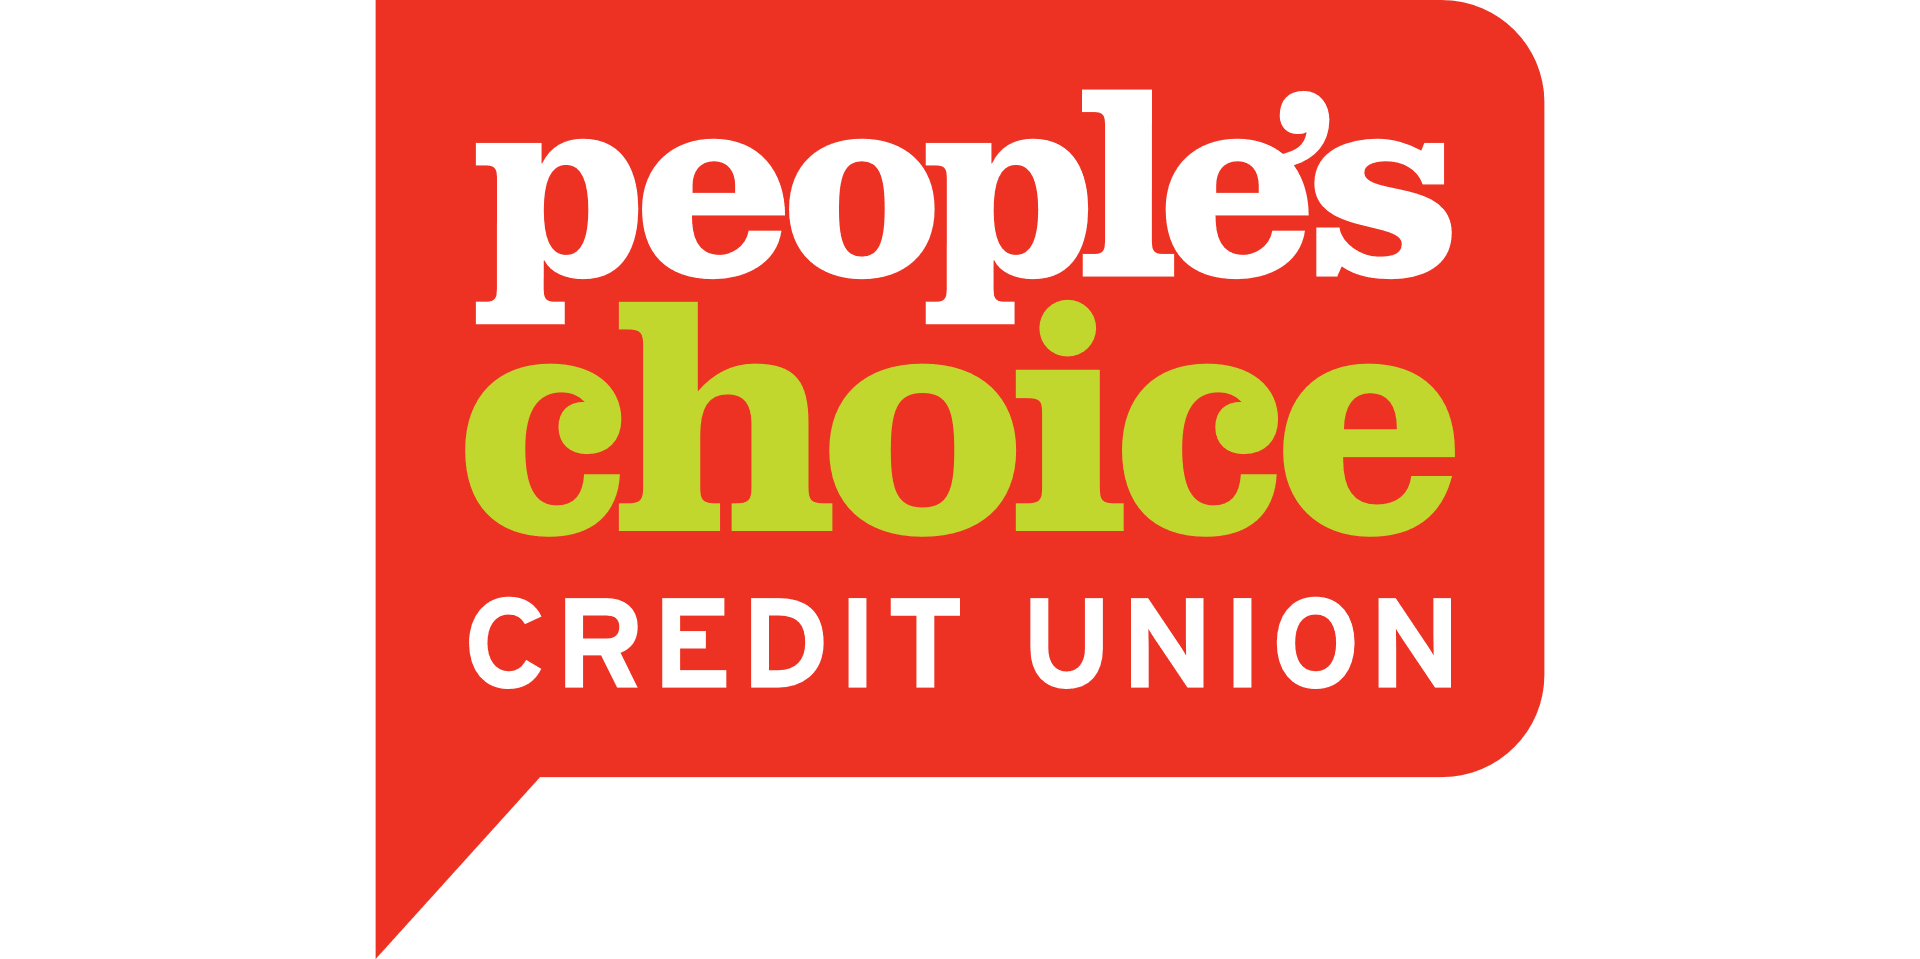 People's Choice Credit Union - Whyalla Norrie, SA 5608 - (01) 3118 1182 | ShowMeLocal.com